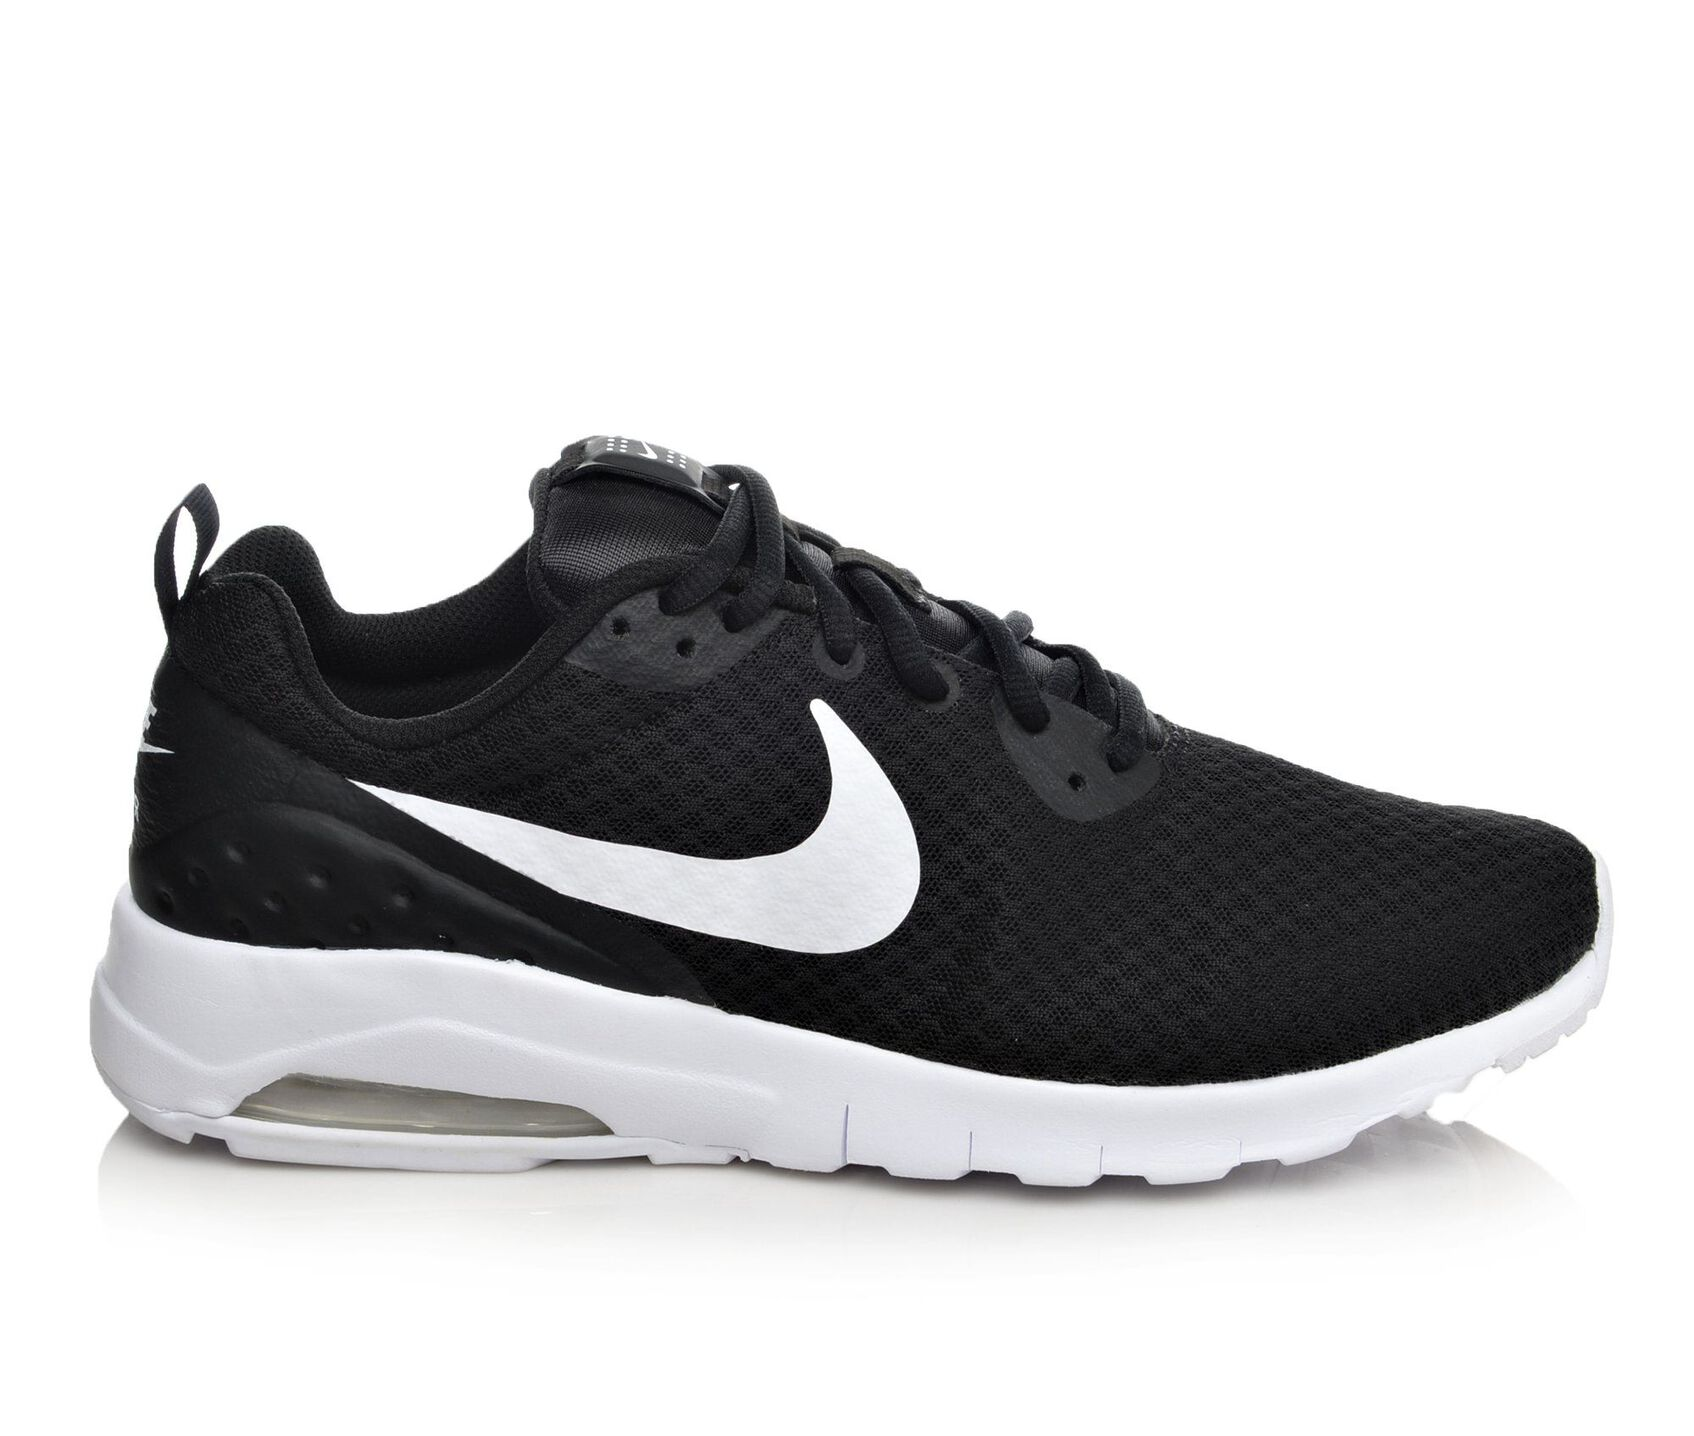 6ddd90896d0a Images. Men  39 s Nike Air Max Motion LW Sneakers